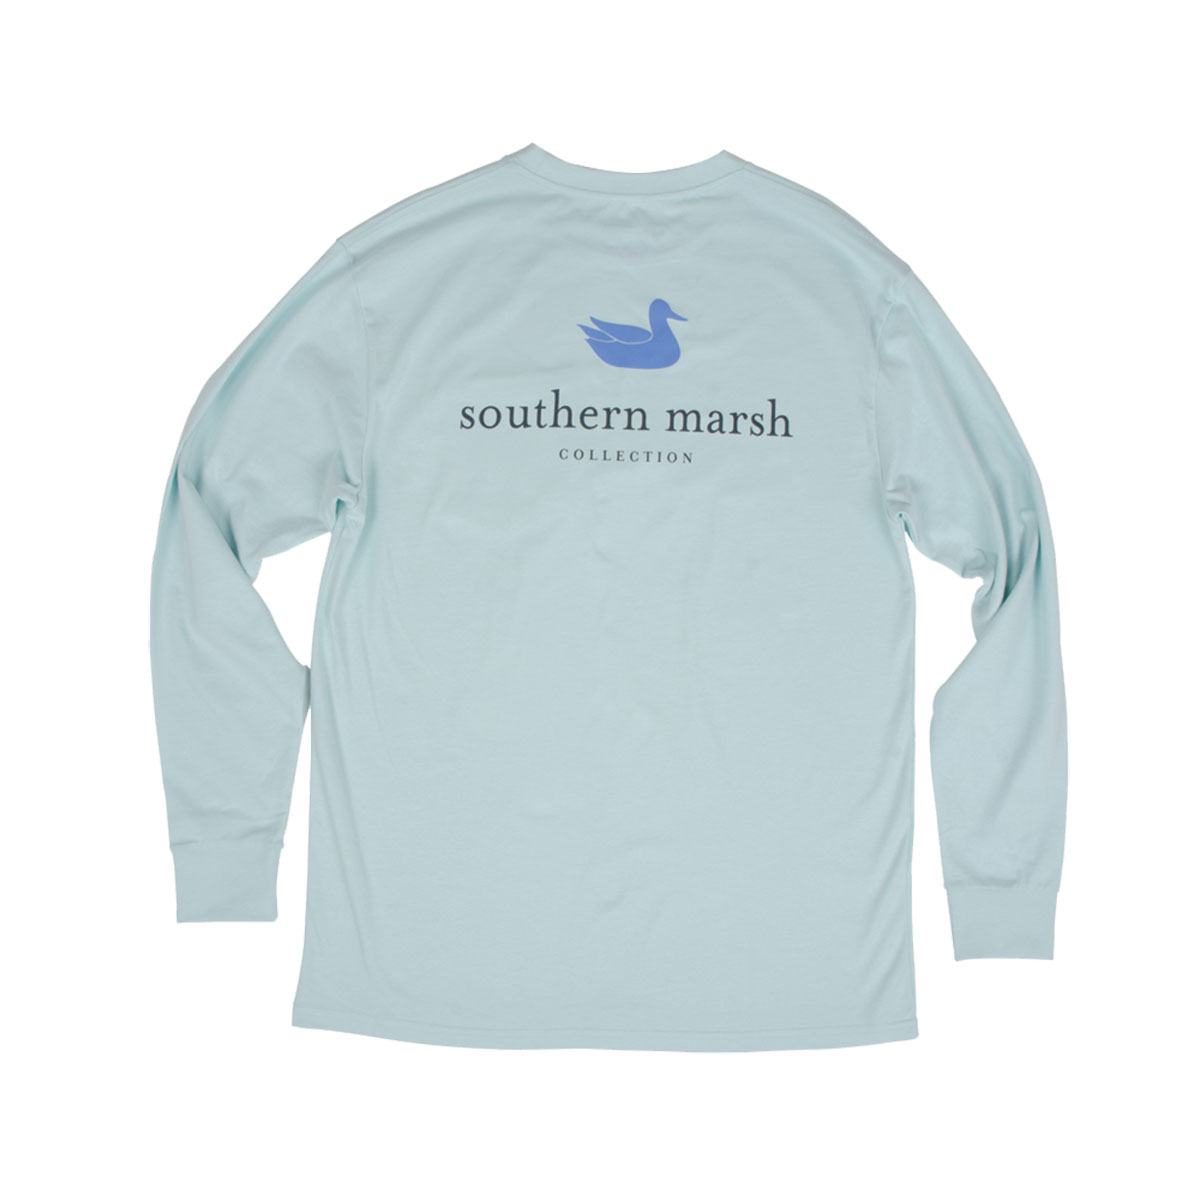 Southern Marsh designs timeless Southern-inspired, stylish apparel for men, women, and youths. Escape to the ranches and rolling hills of the great wild west in casual short- or long-sleeved shirts, polos, dress shirts, outerwear, hats, and performance clothes for hunting, golfing, and fishing.